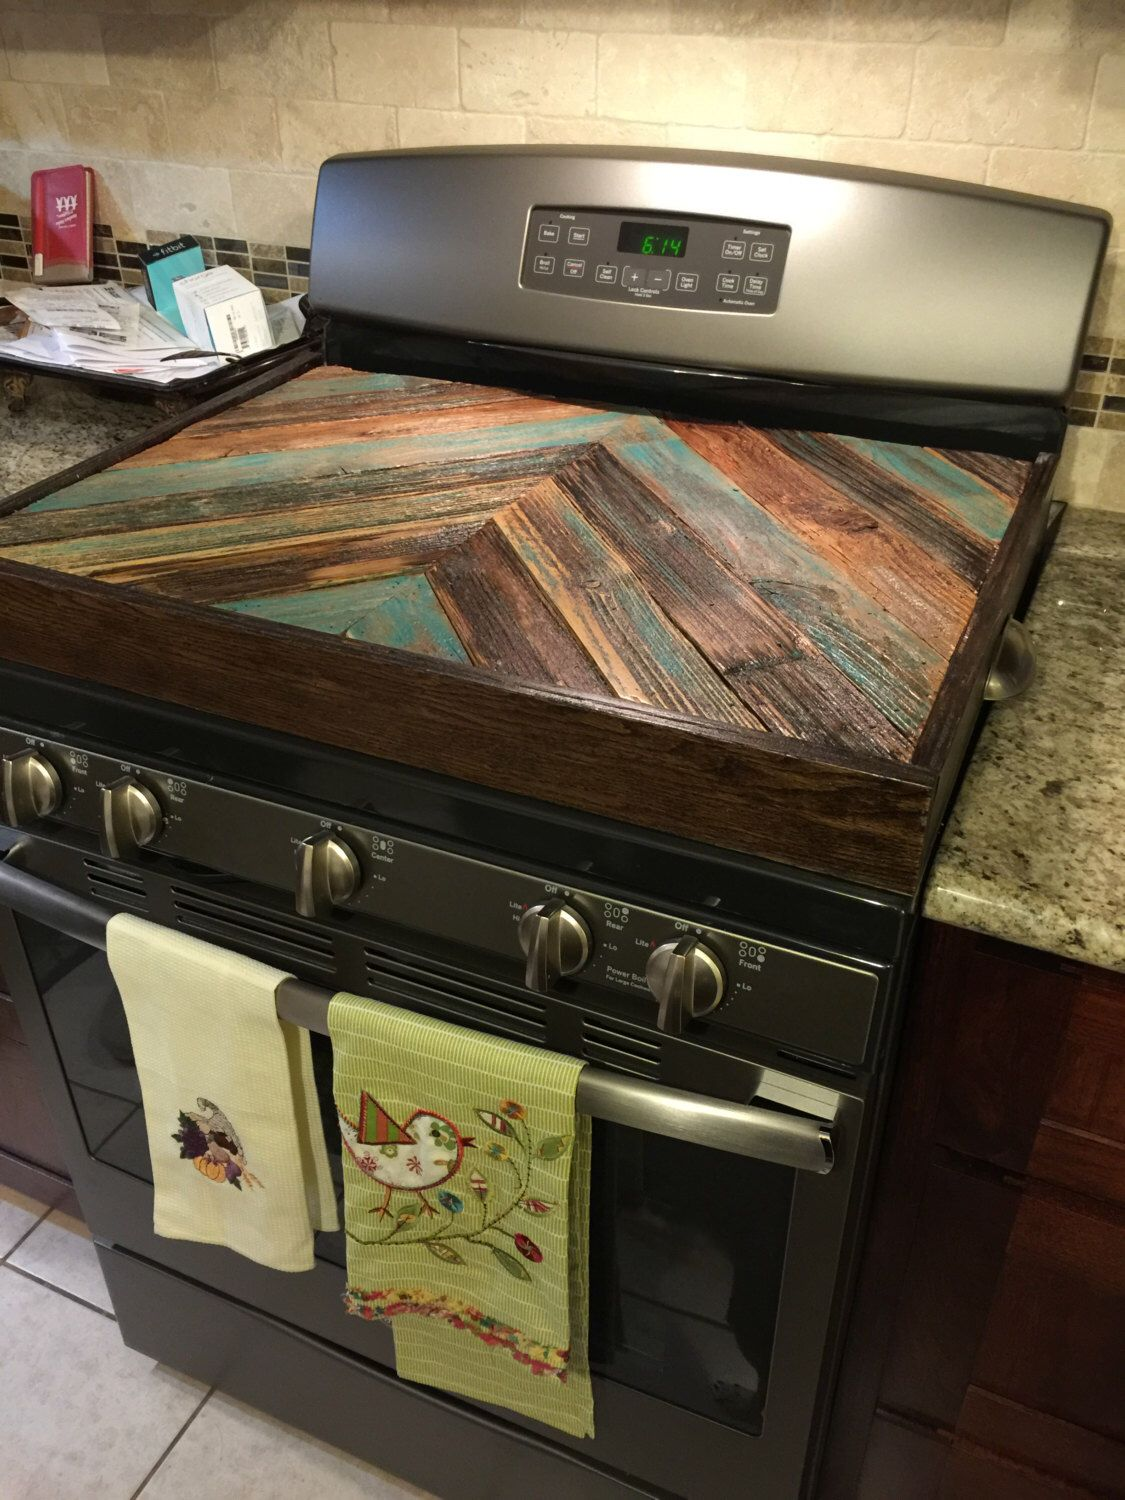 Stovetop Cover Home Diy Stove Cover Diy Home Improvement